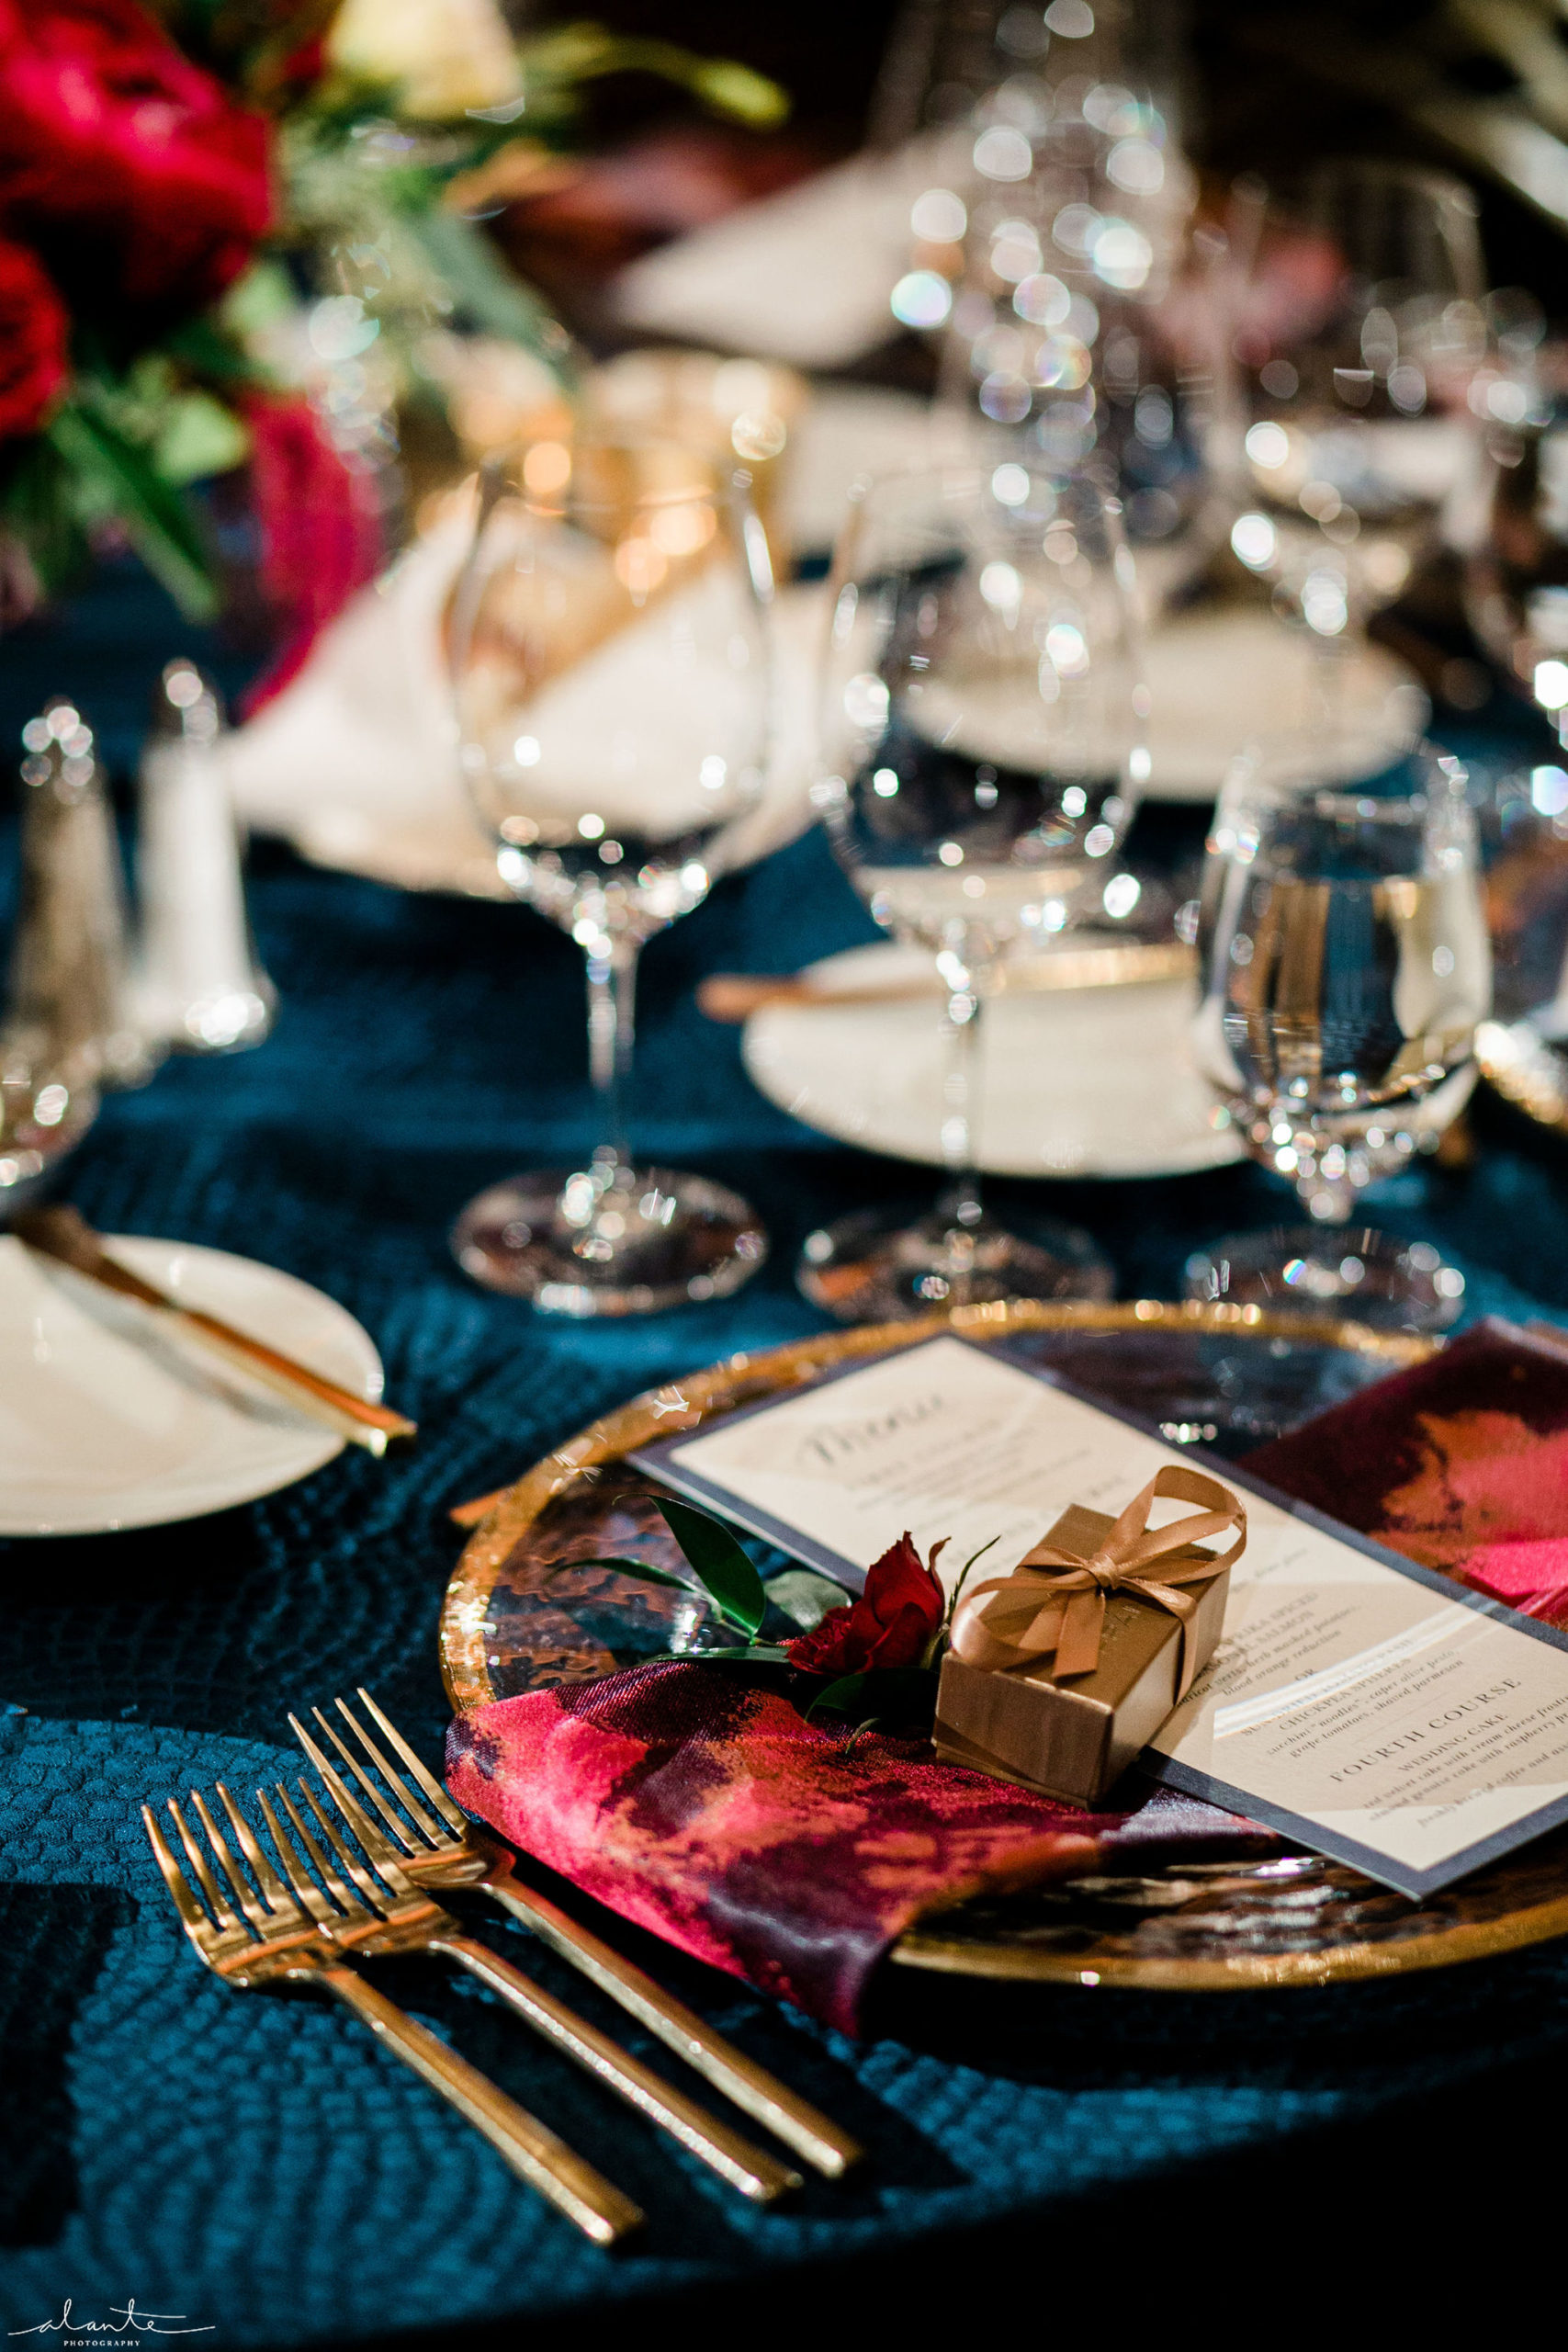 Red winter wedding place setting with red napkins, navy blue linens and gold flatware and charger plates.